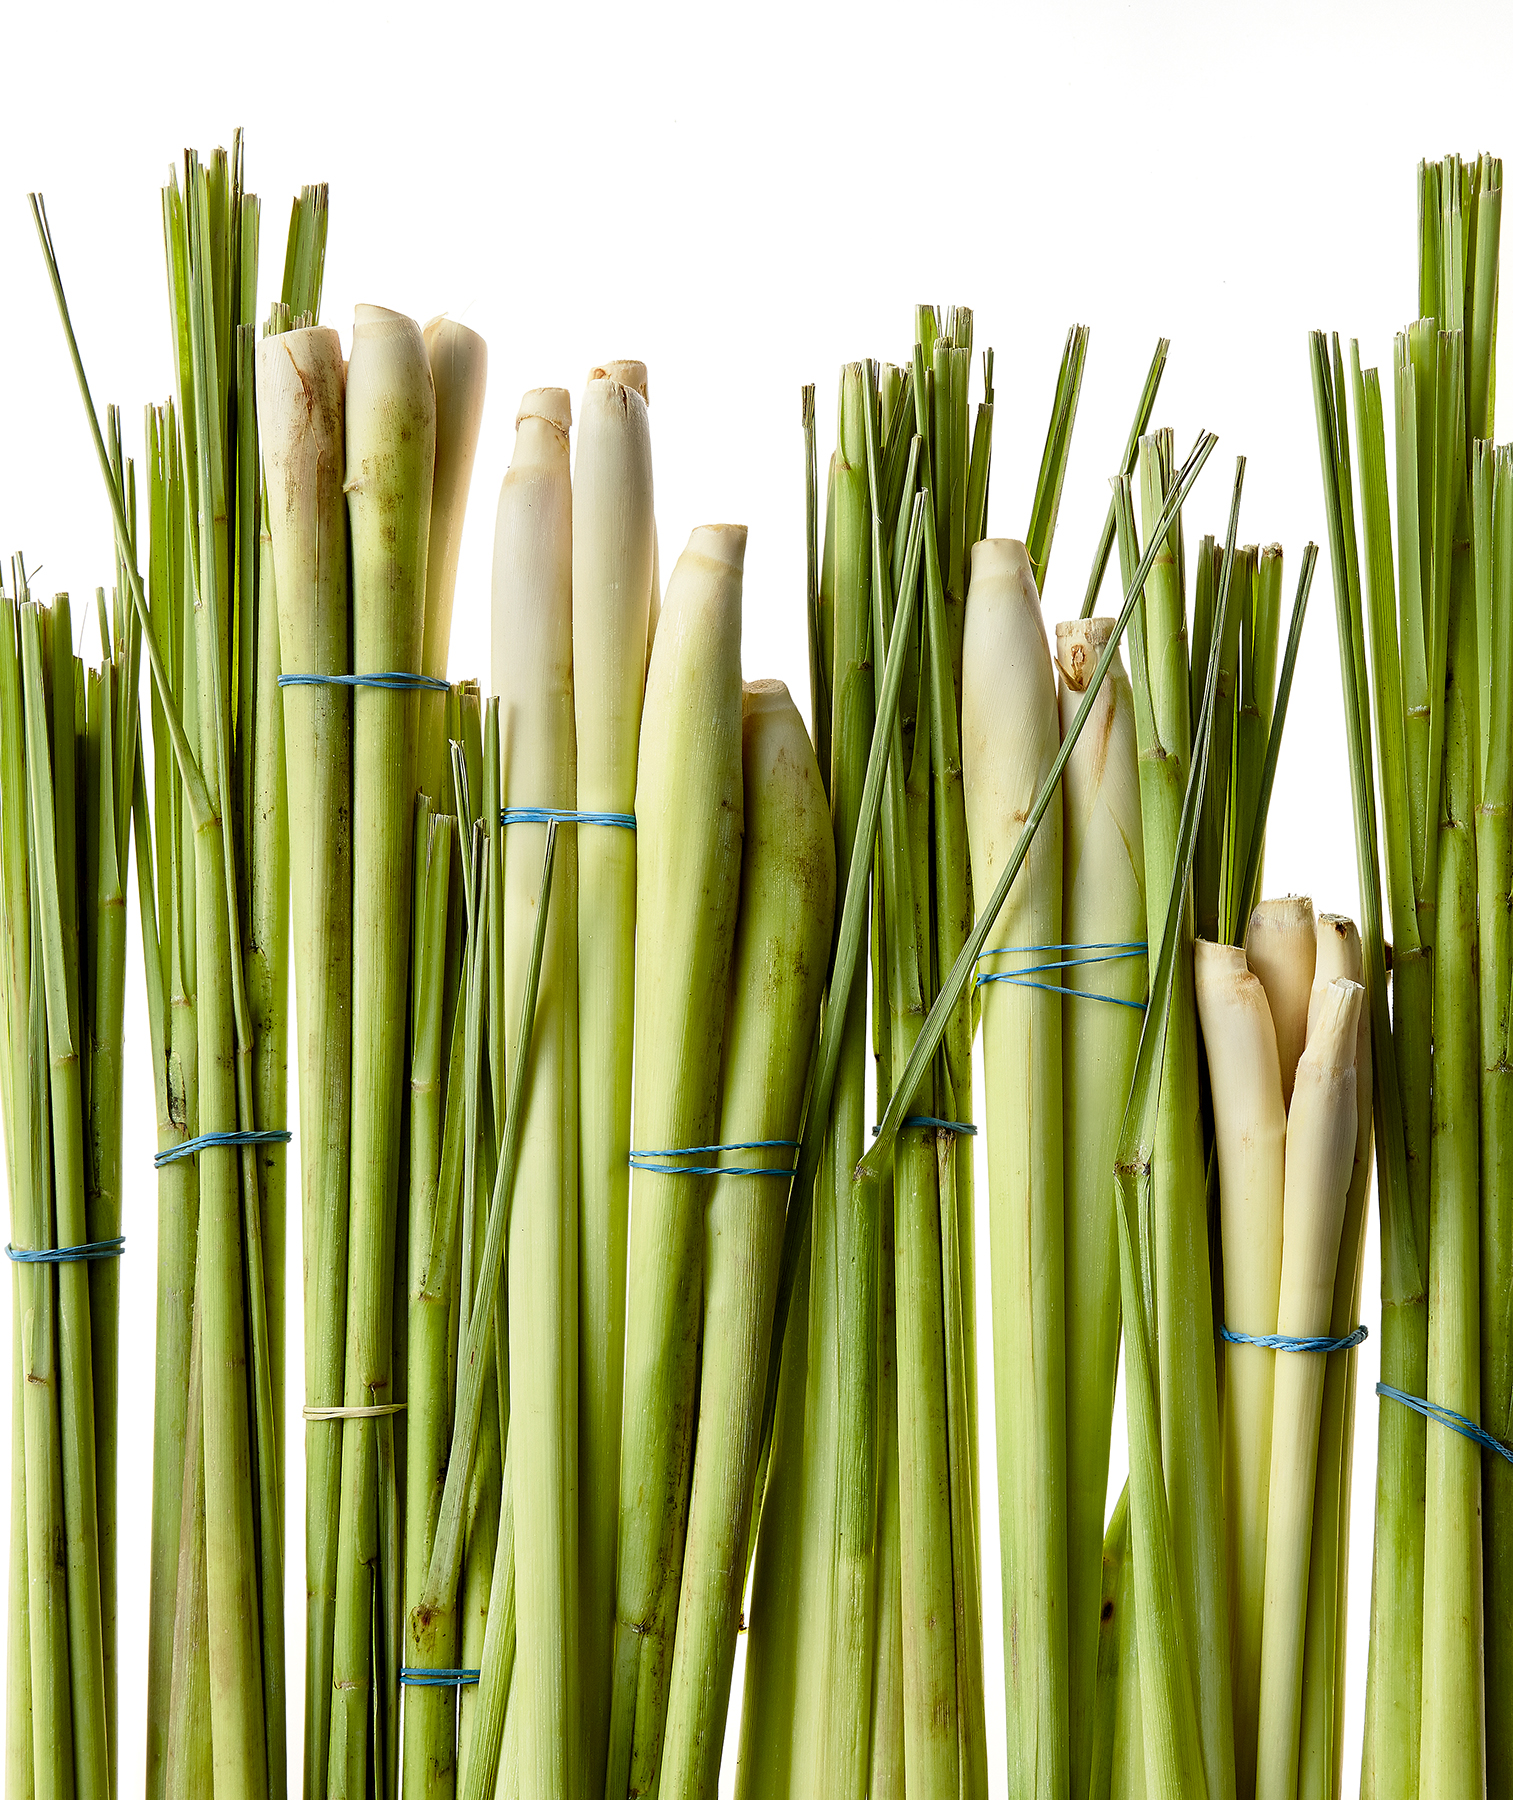 Lemongrass bunches